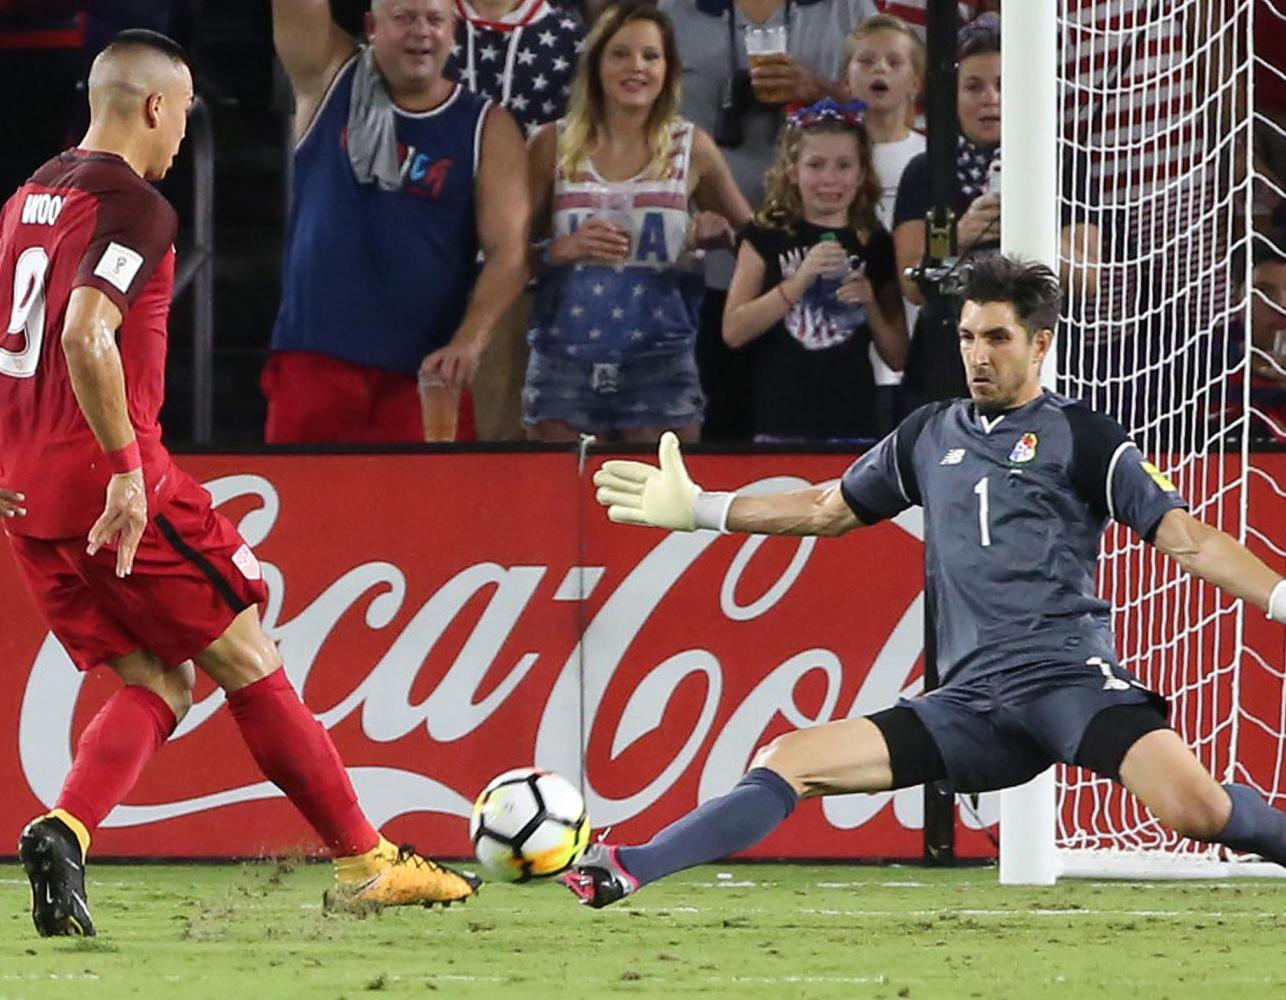 Panama goalkeeper Jaime Penedo (1) stops a goal by USA's Bobby Wood (9) during the World Cup qualifier game on Oct. 6, 2017.